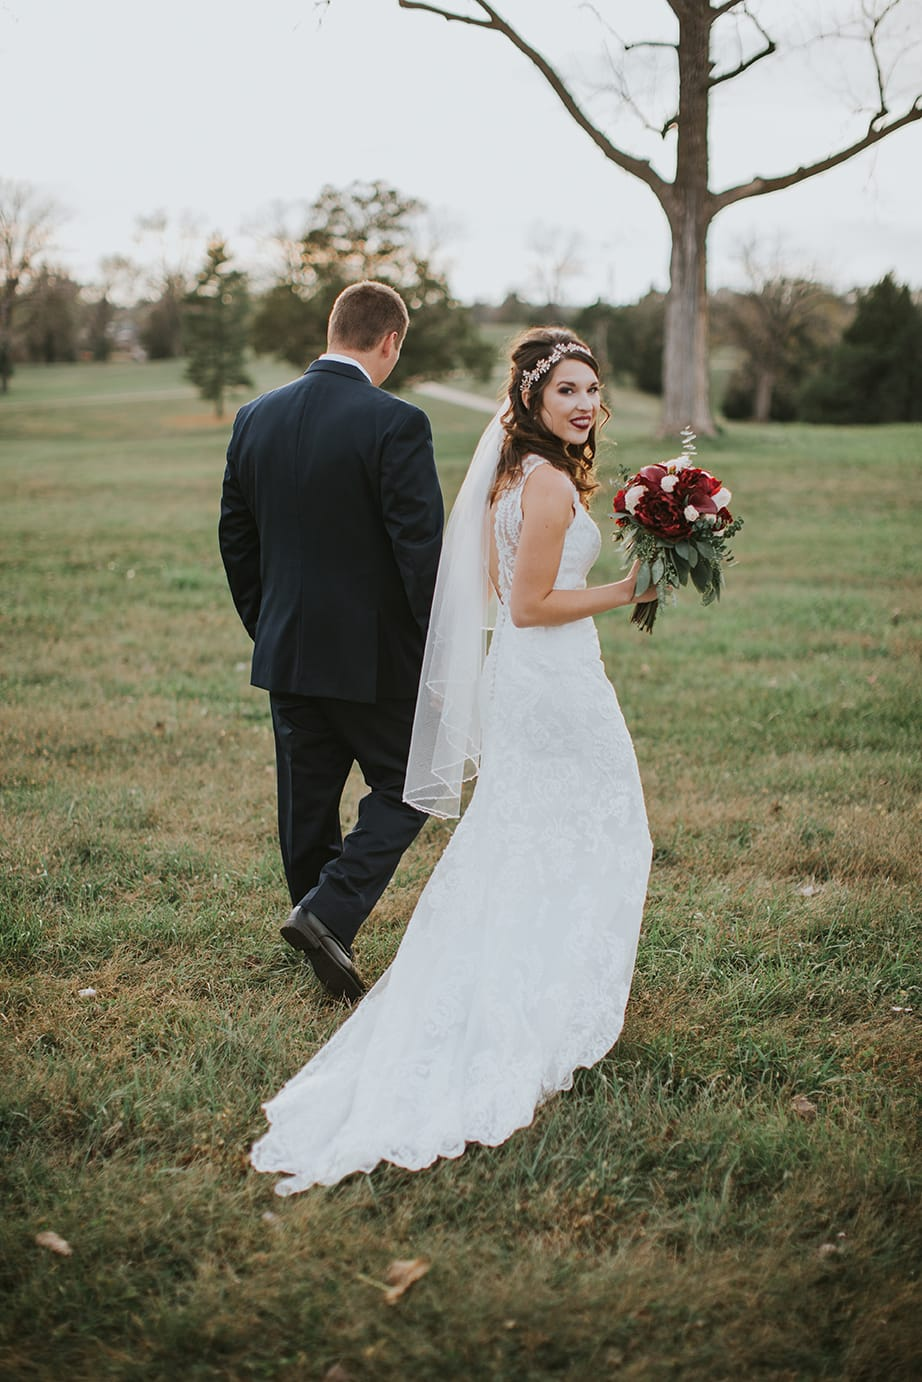 Fall Wedding with Retro-Modern Details - Midgley Bride is wearing Winifred by Sottero and Midgley